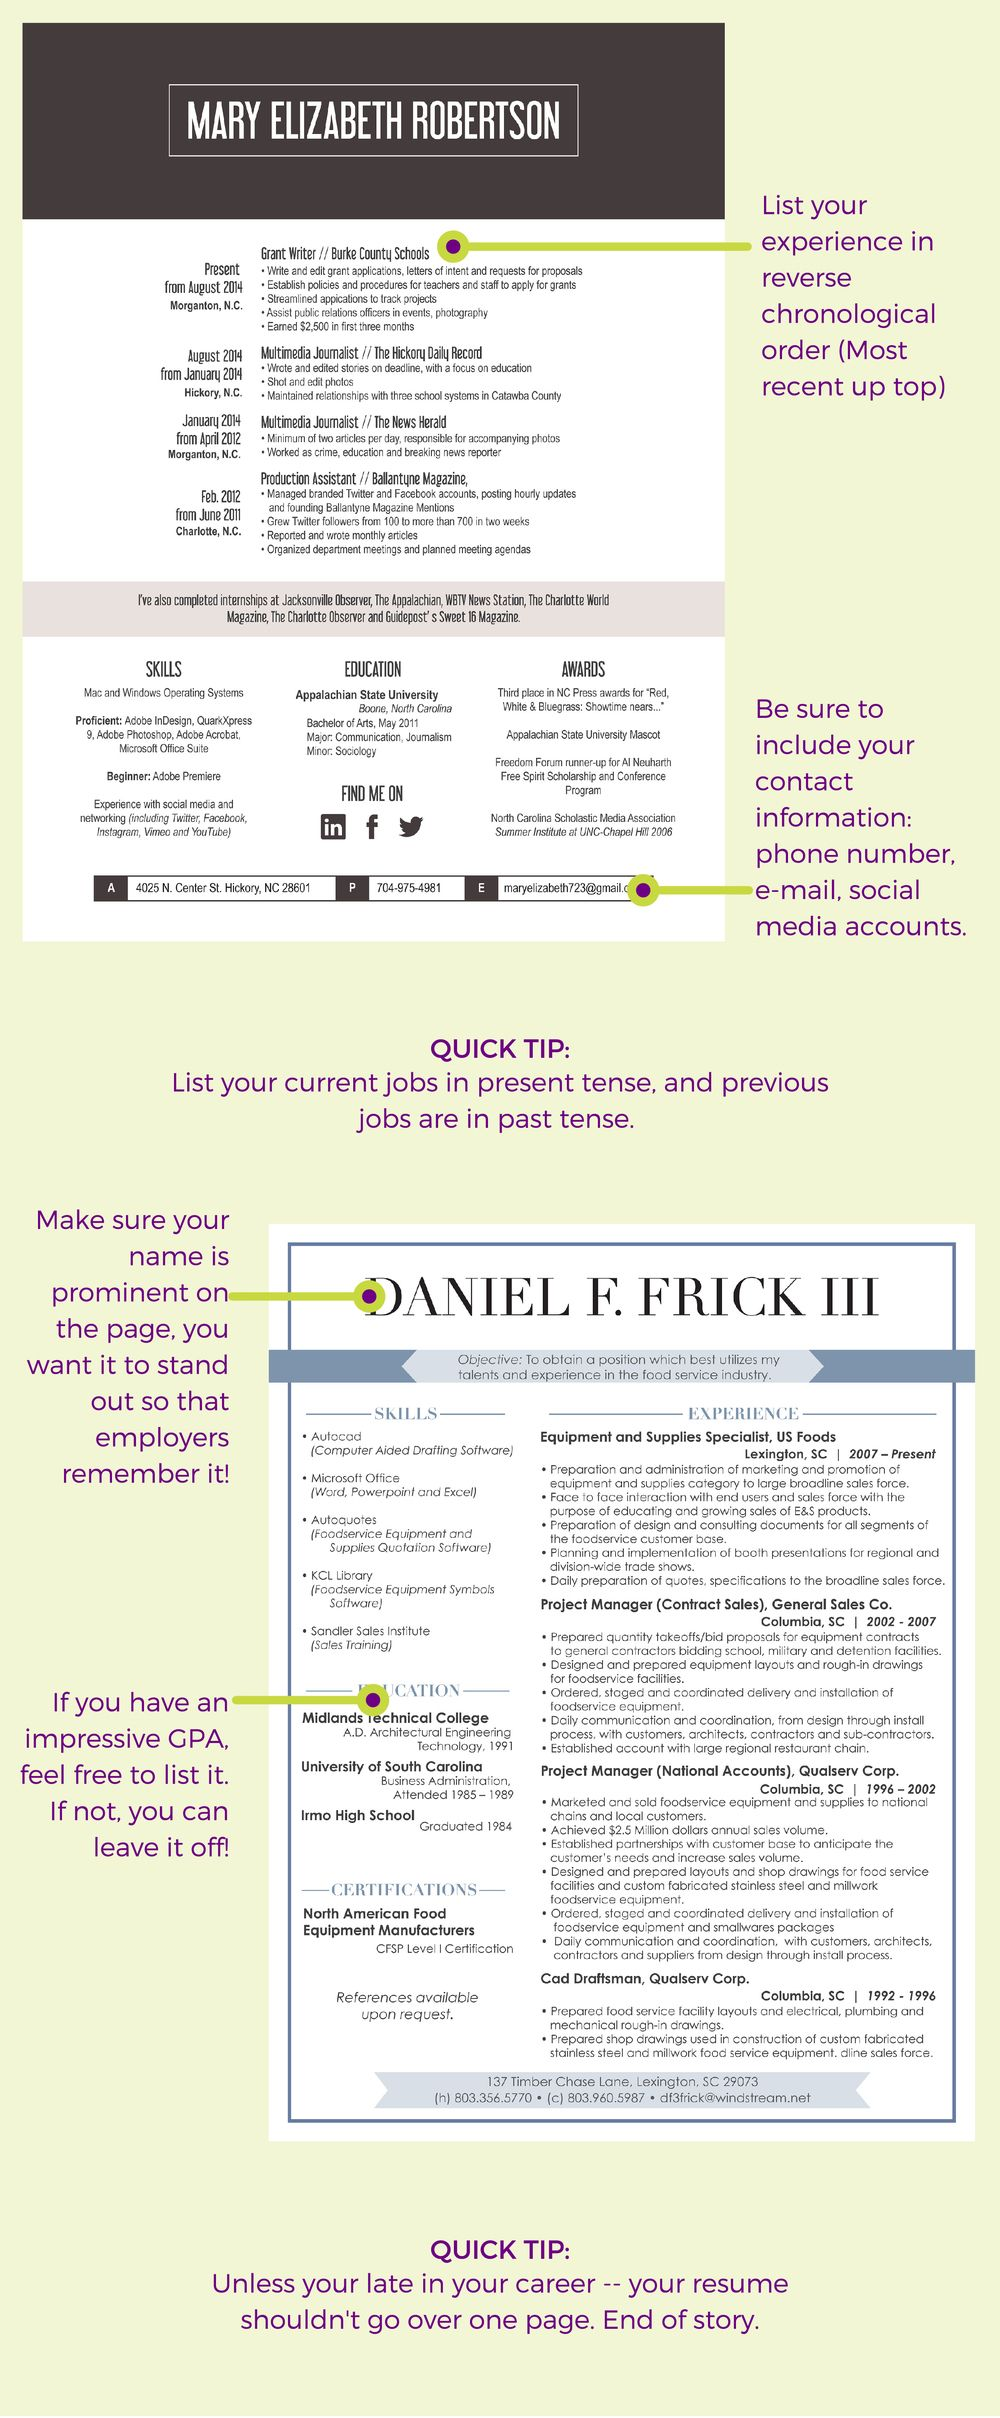 A beginners guide to finding a job part 2 resumes